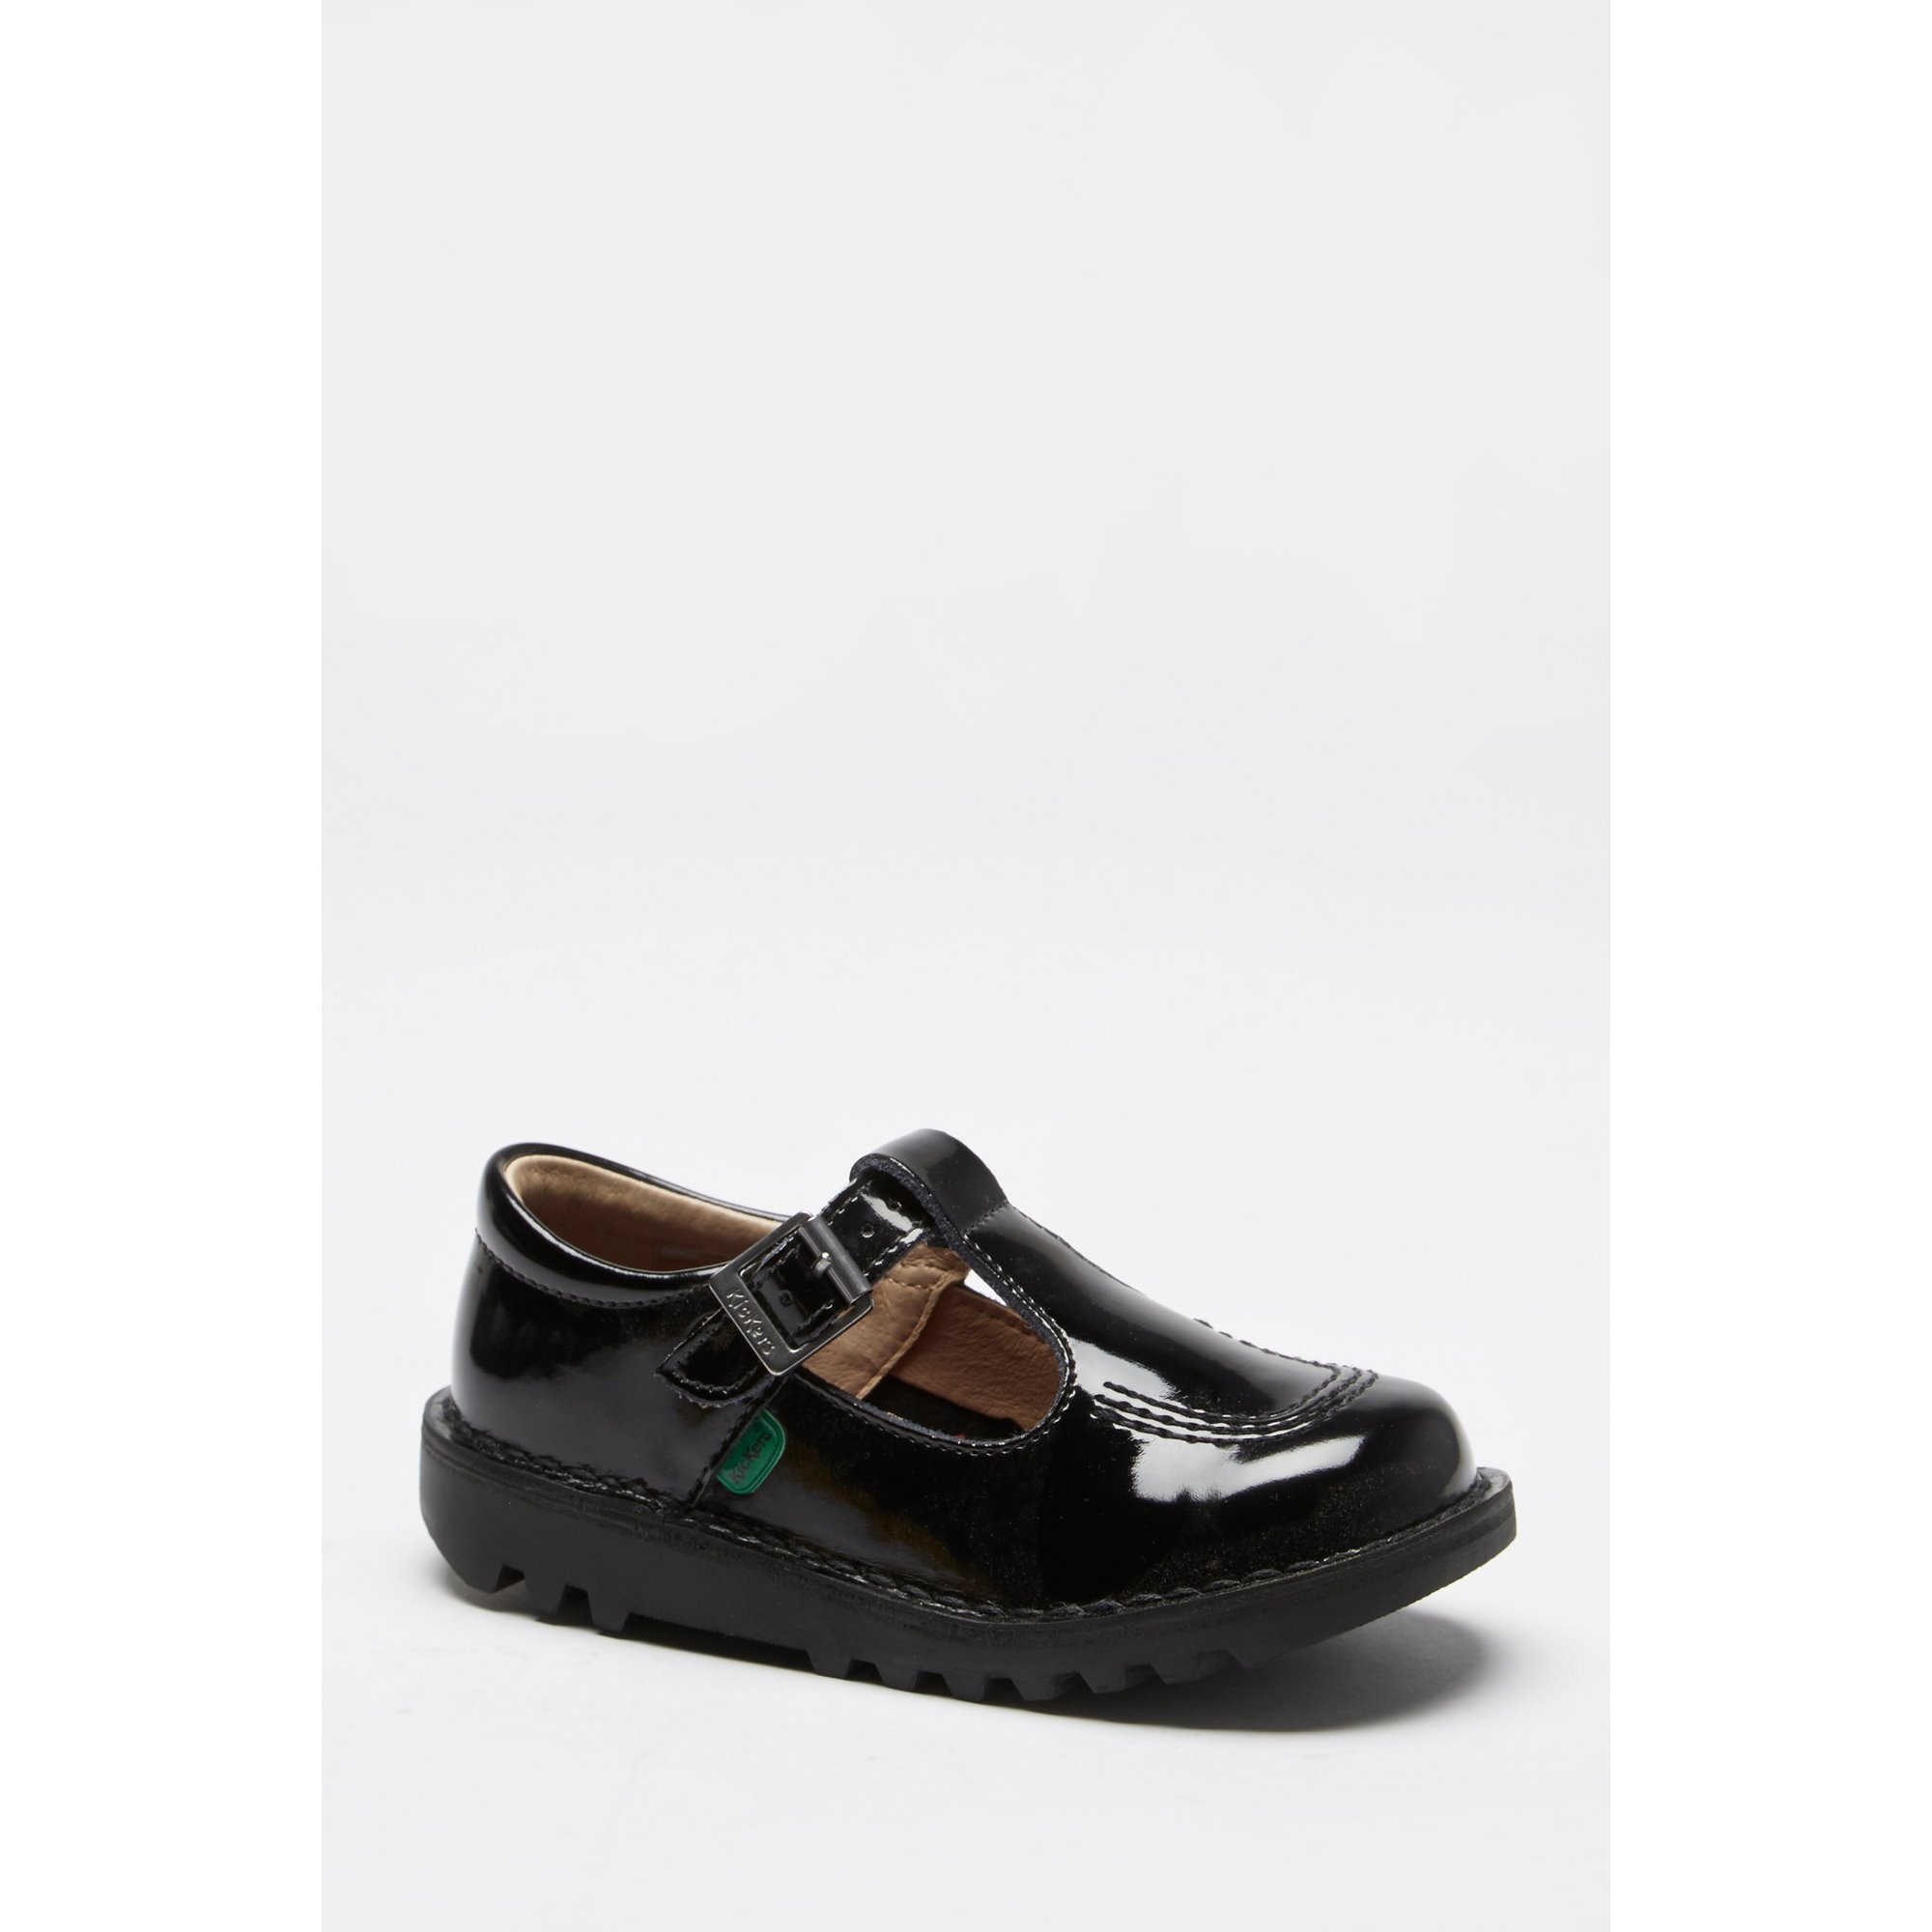 Image of Girls Kickers T-Bar Black Patent Shoes